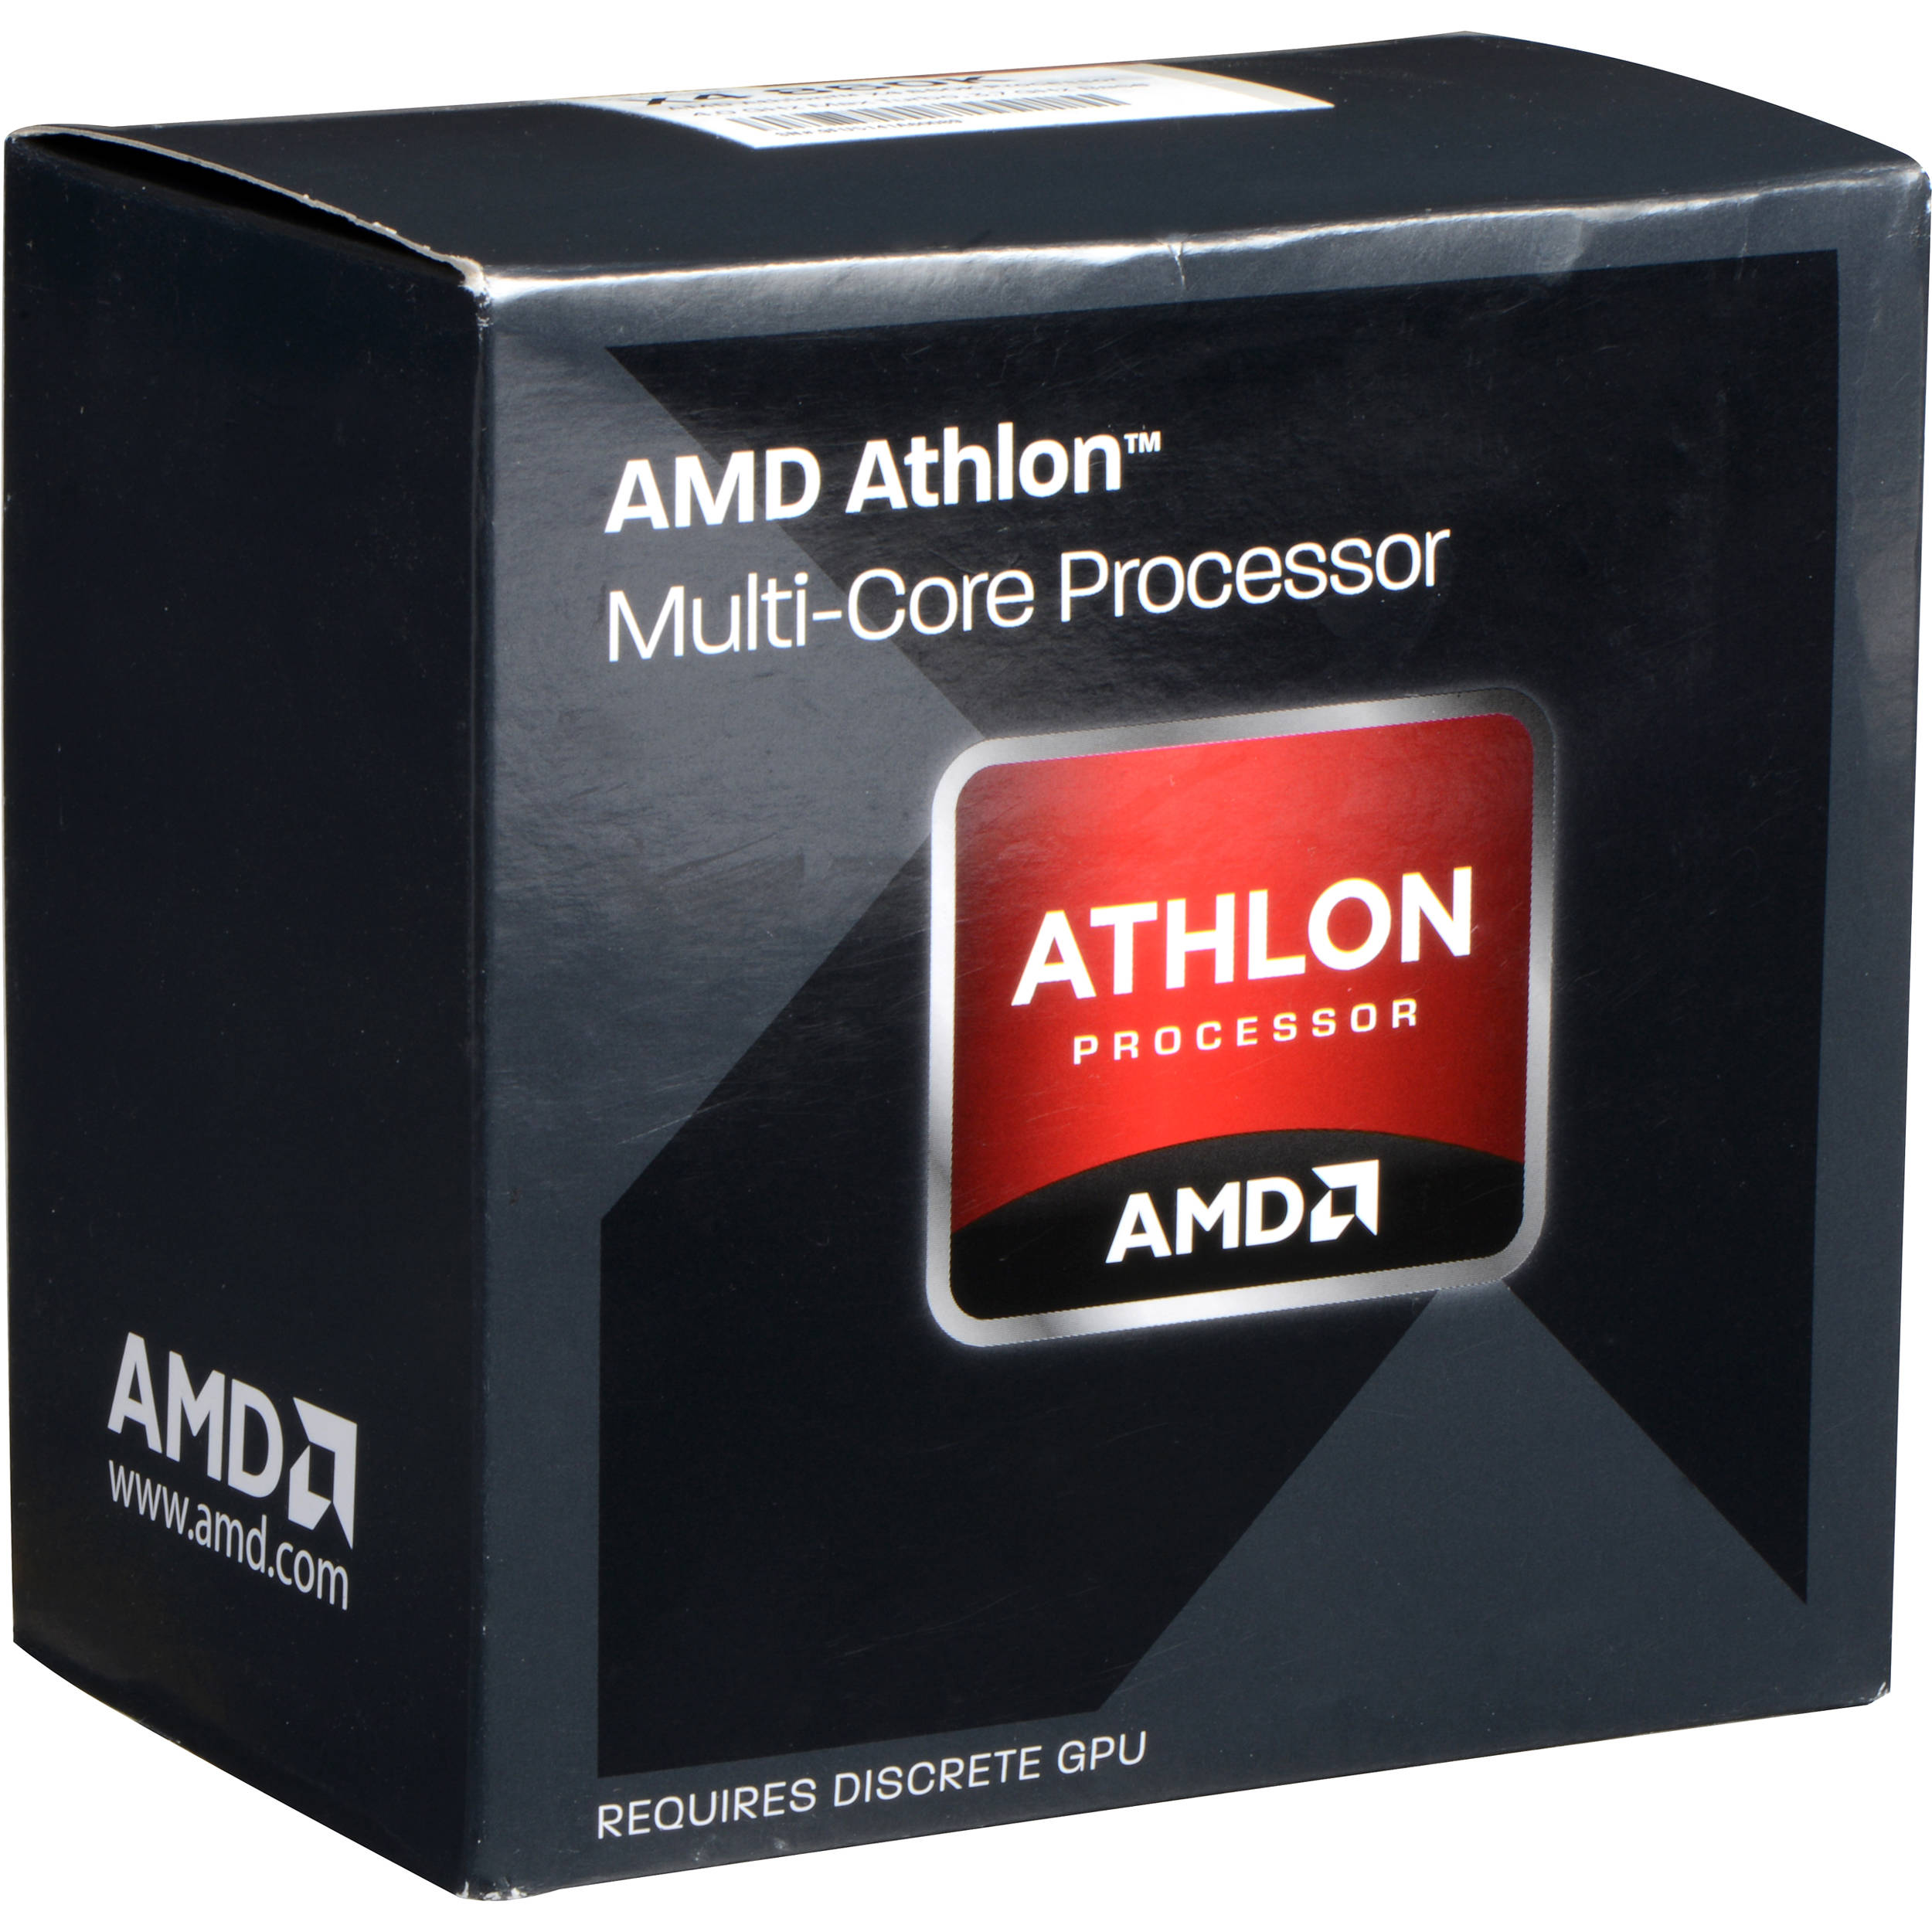 amd athlon x4 860k 3 7ghz quad core processor can